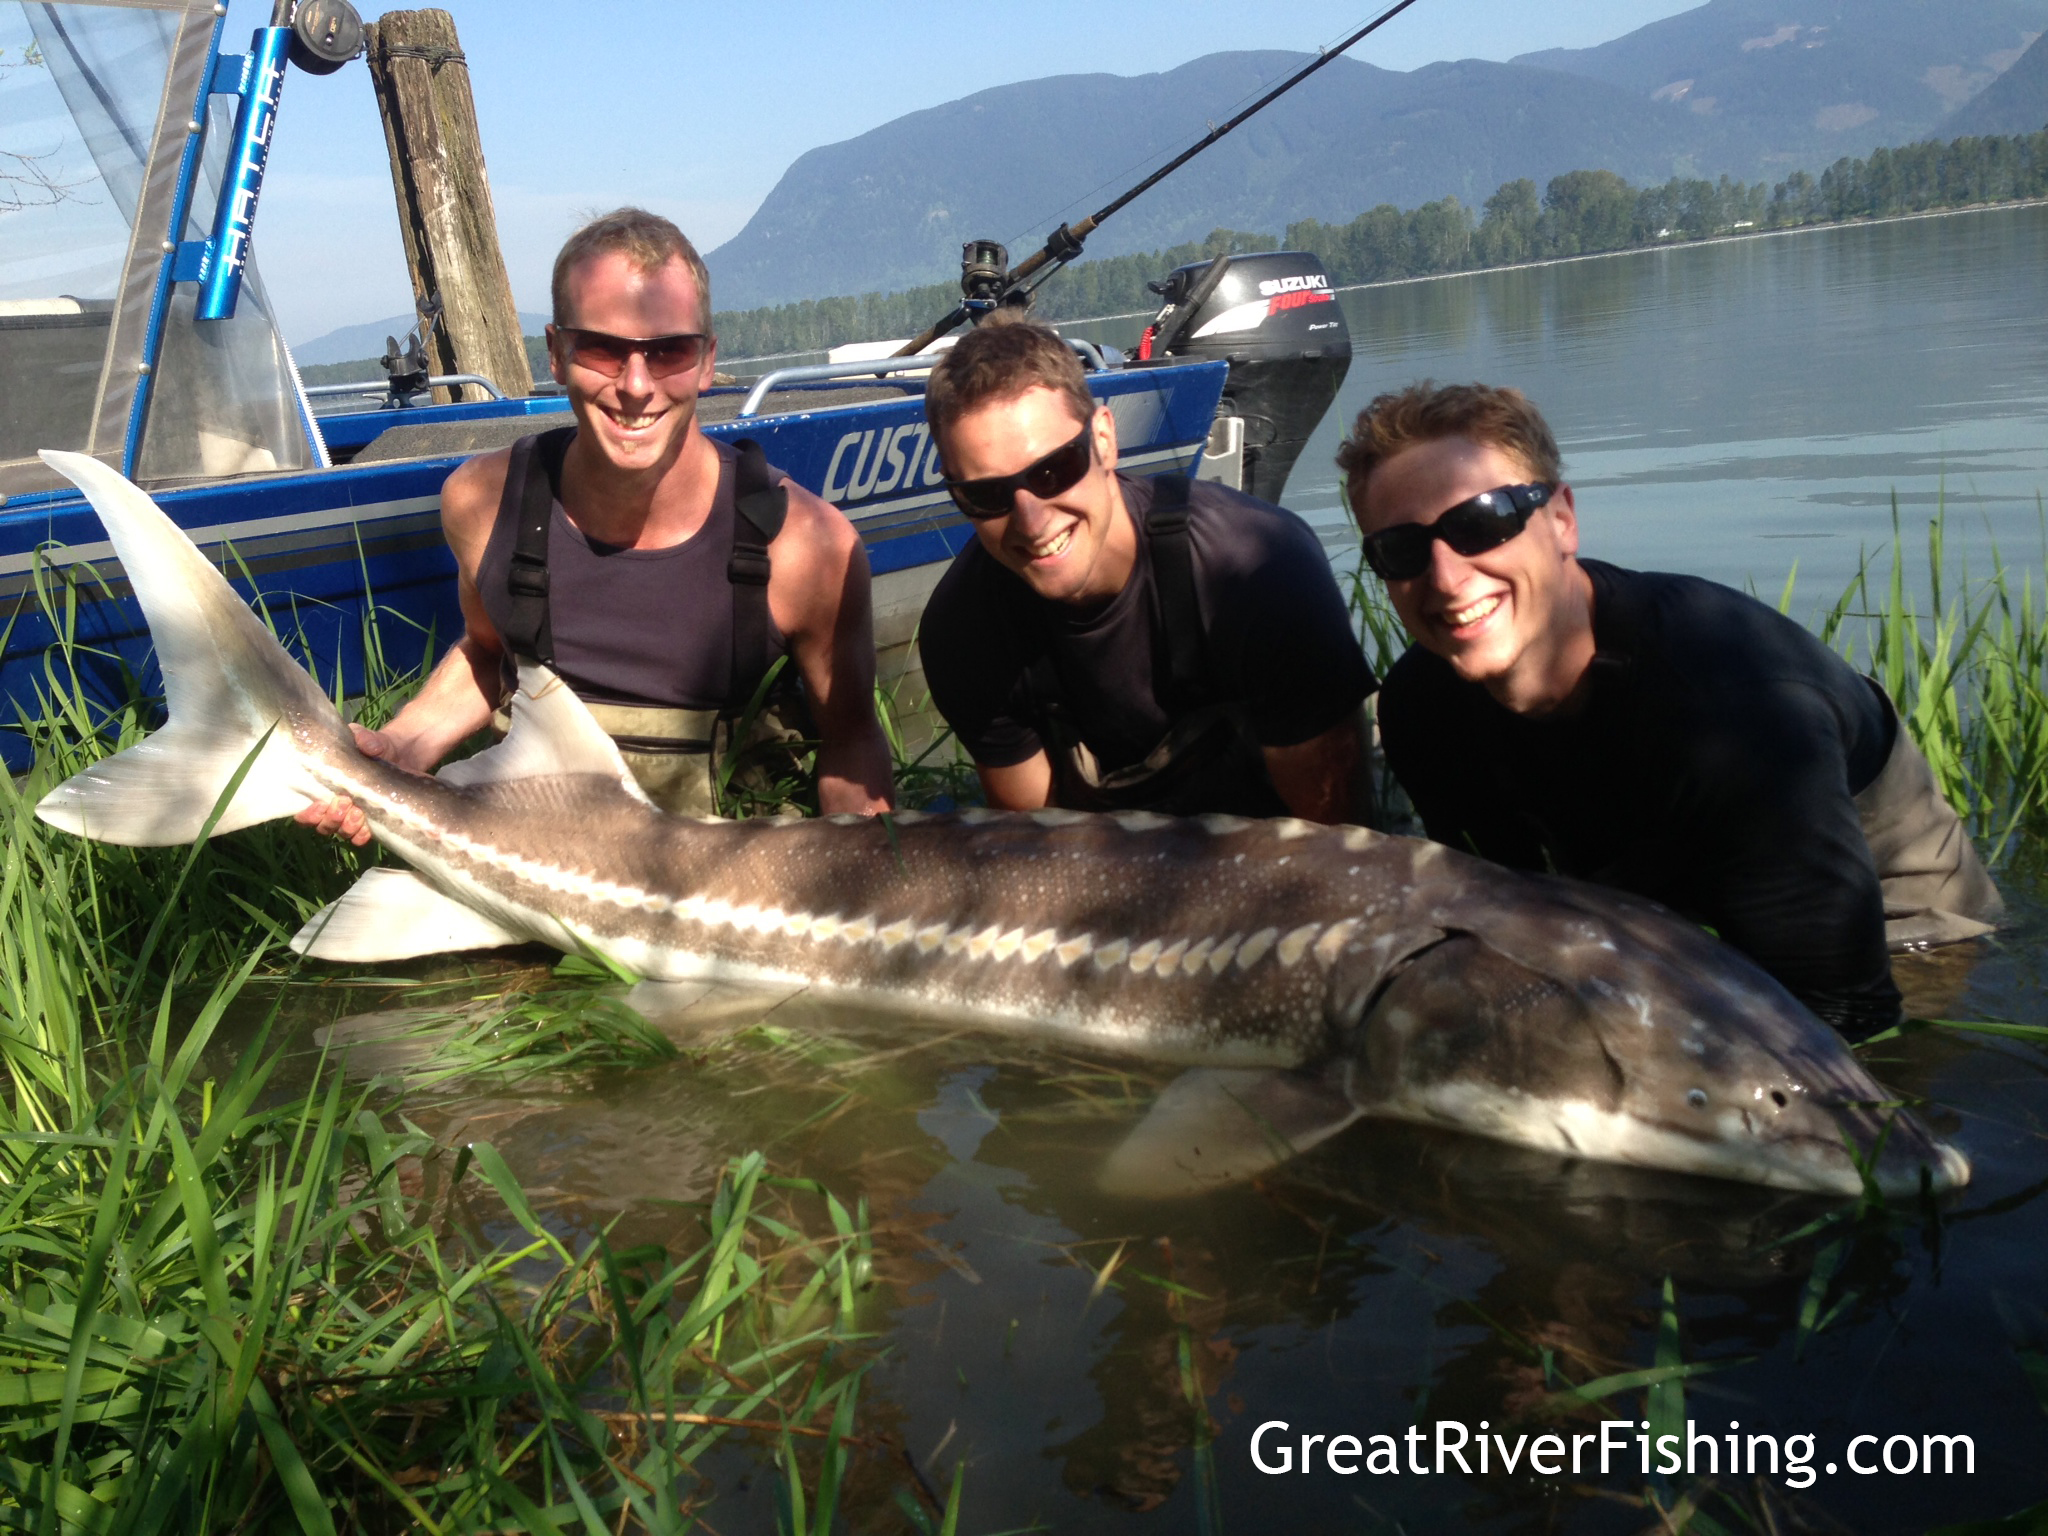 Fishing report vancouver fraser valley 05 24 13 for Sturgeon fishing report